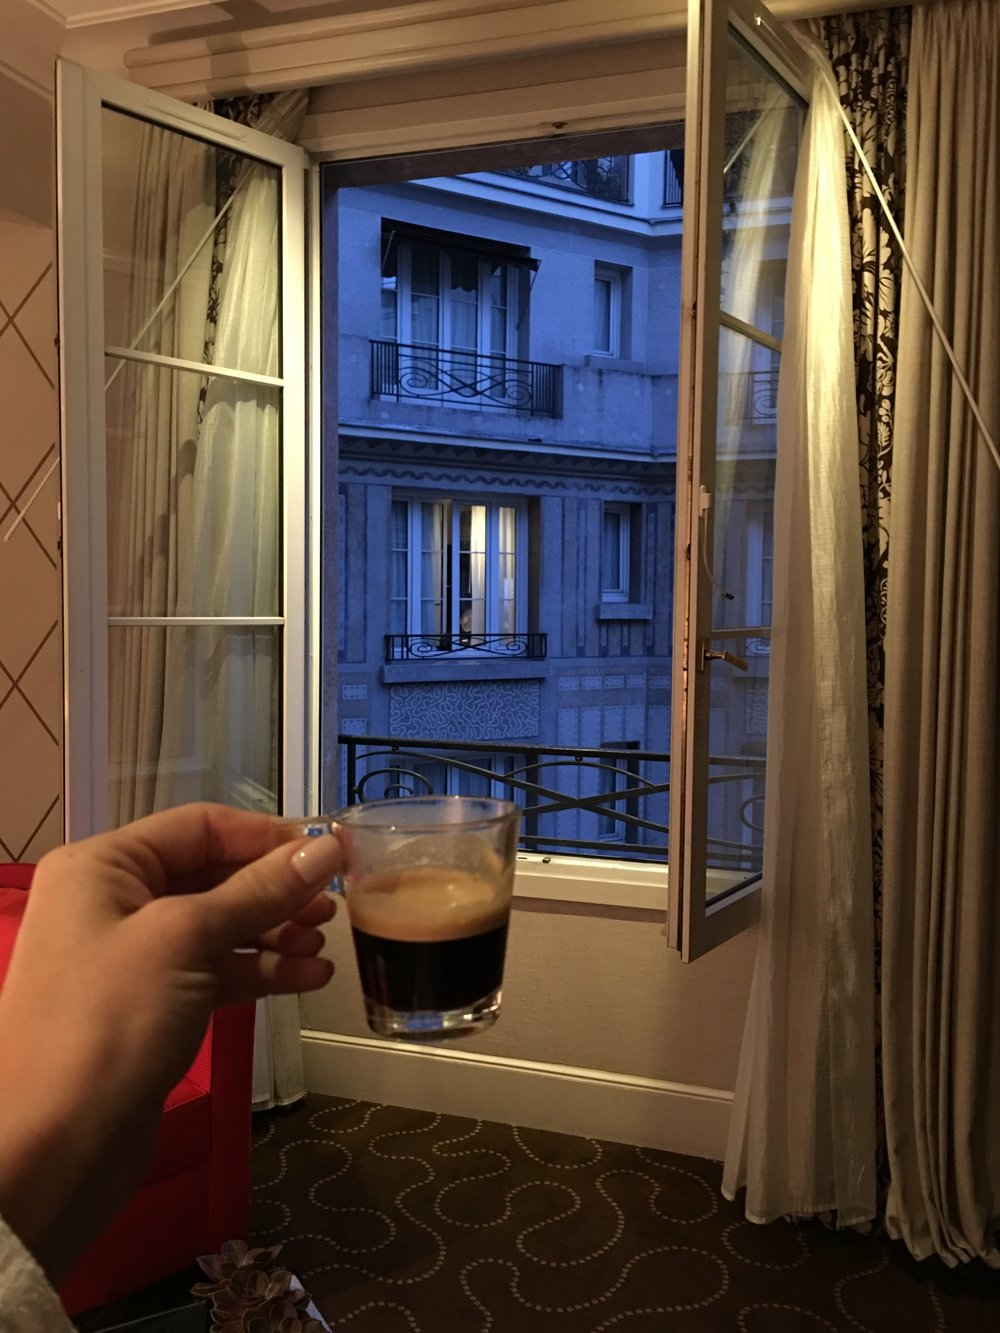 Espresso before the sunrise in our cute room